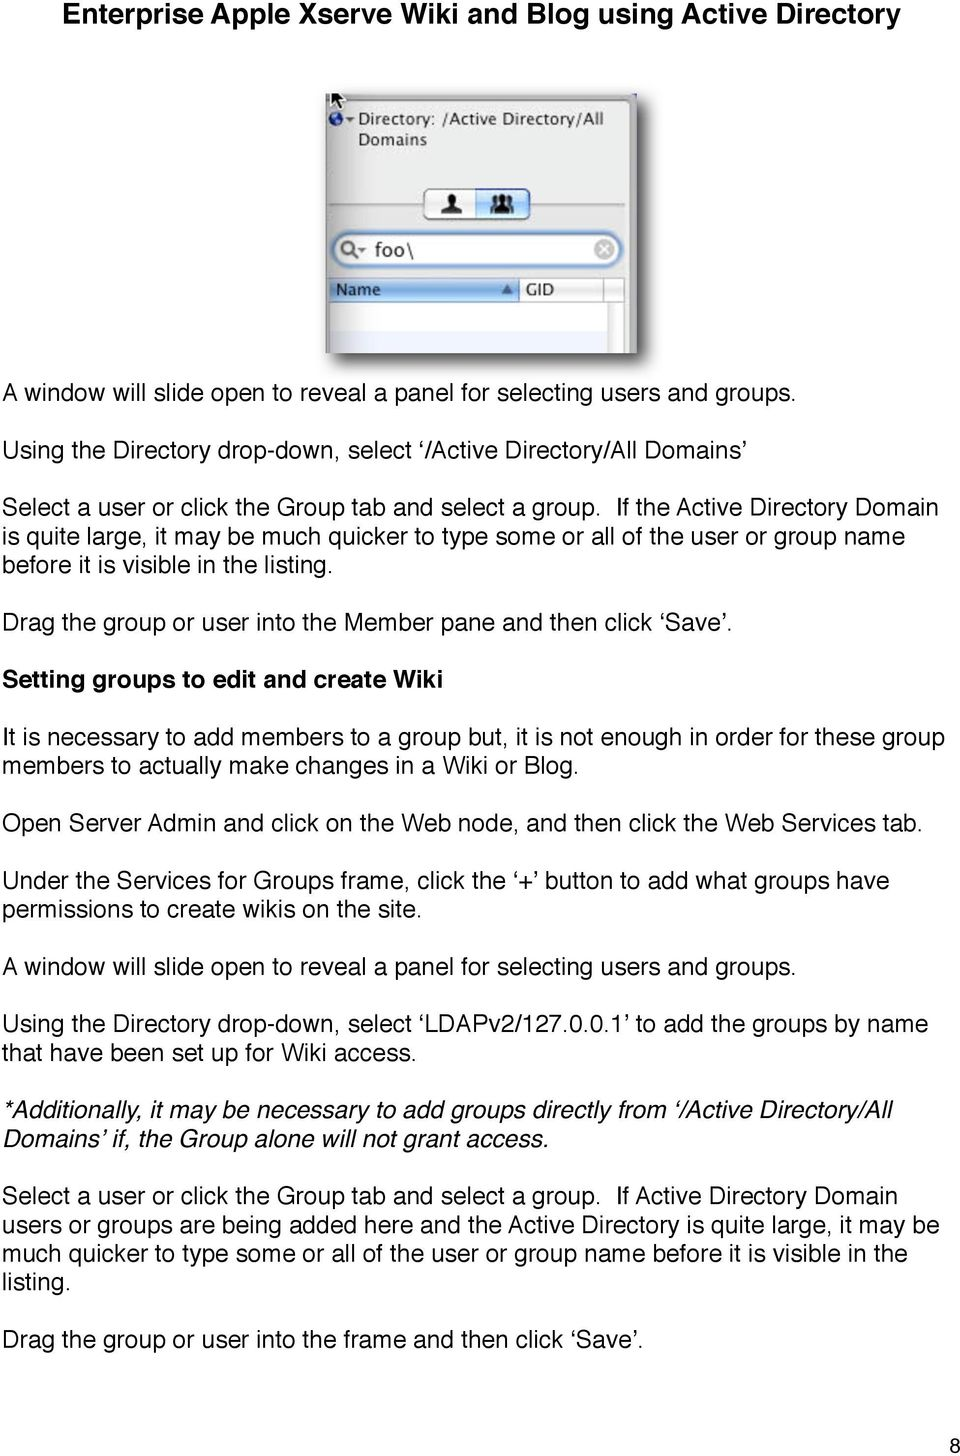 If the Active Directory Domain is quite large, it may be much quicker to type some or all of the user or group name before it is visible in the listing.